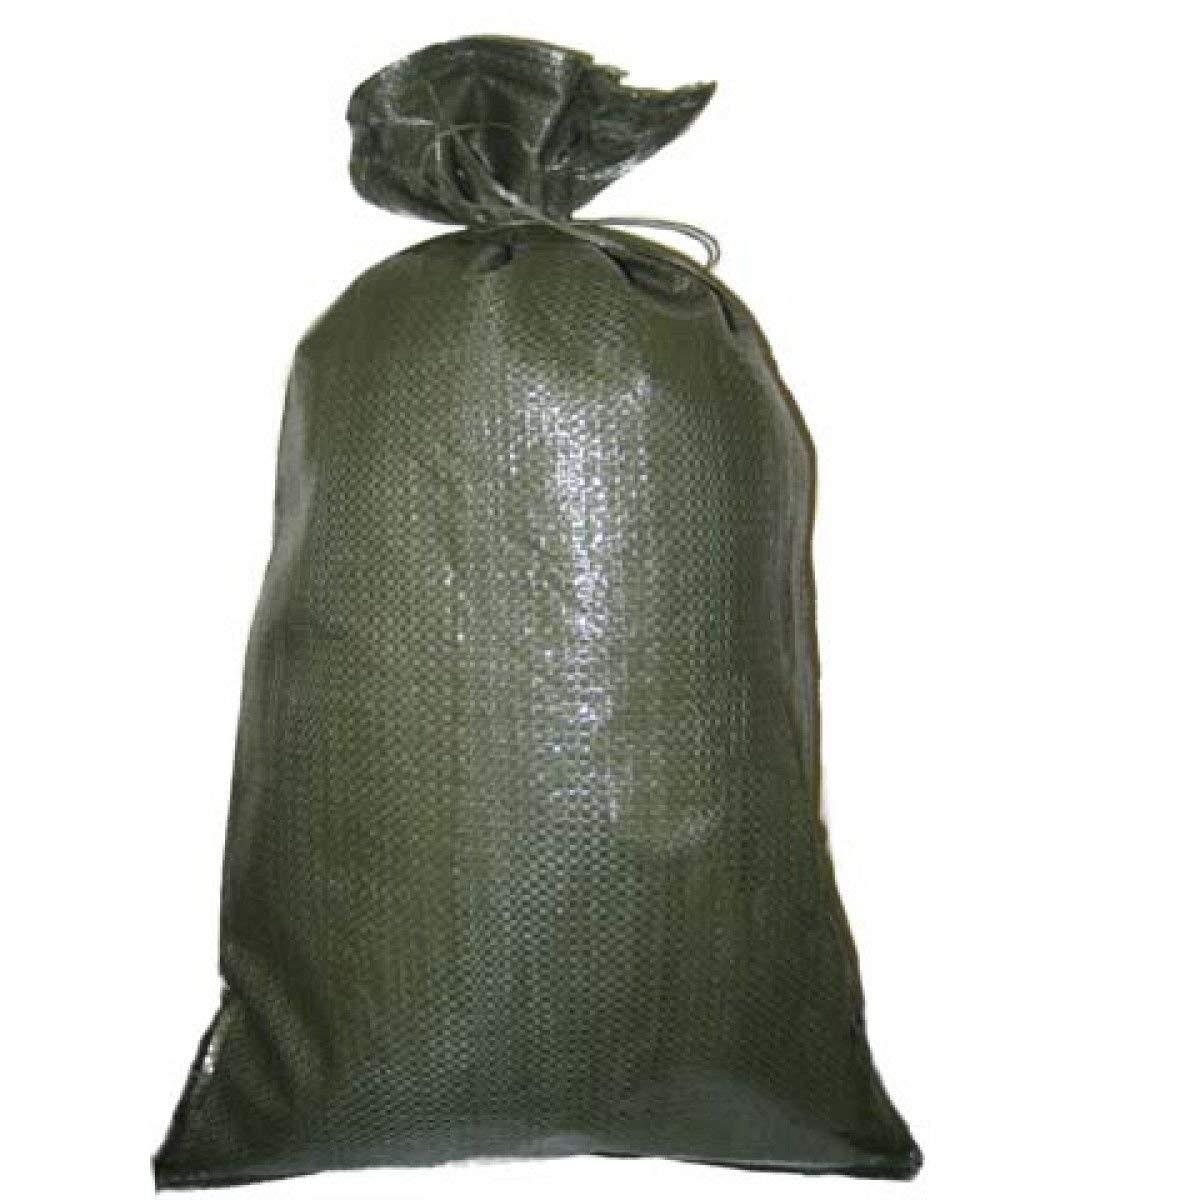 Green Sandbag Sandbags Will Hold 50 Pounds of Sand Polypropylene Olive Drab (100) by Sandbaggy